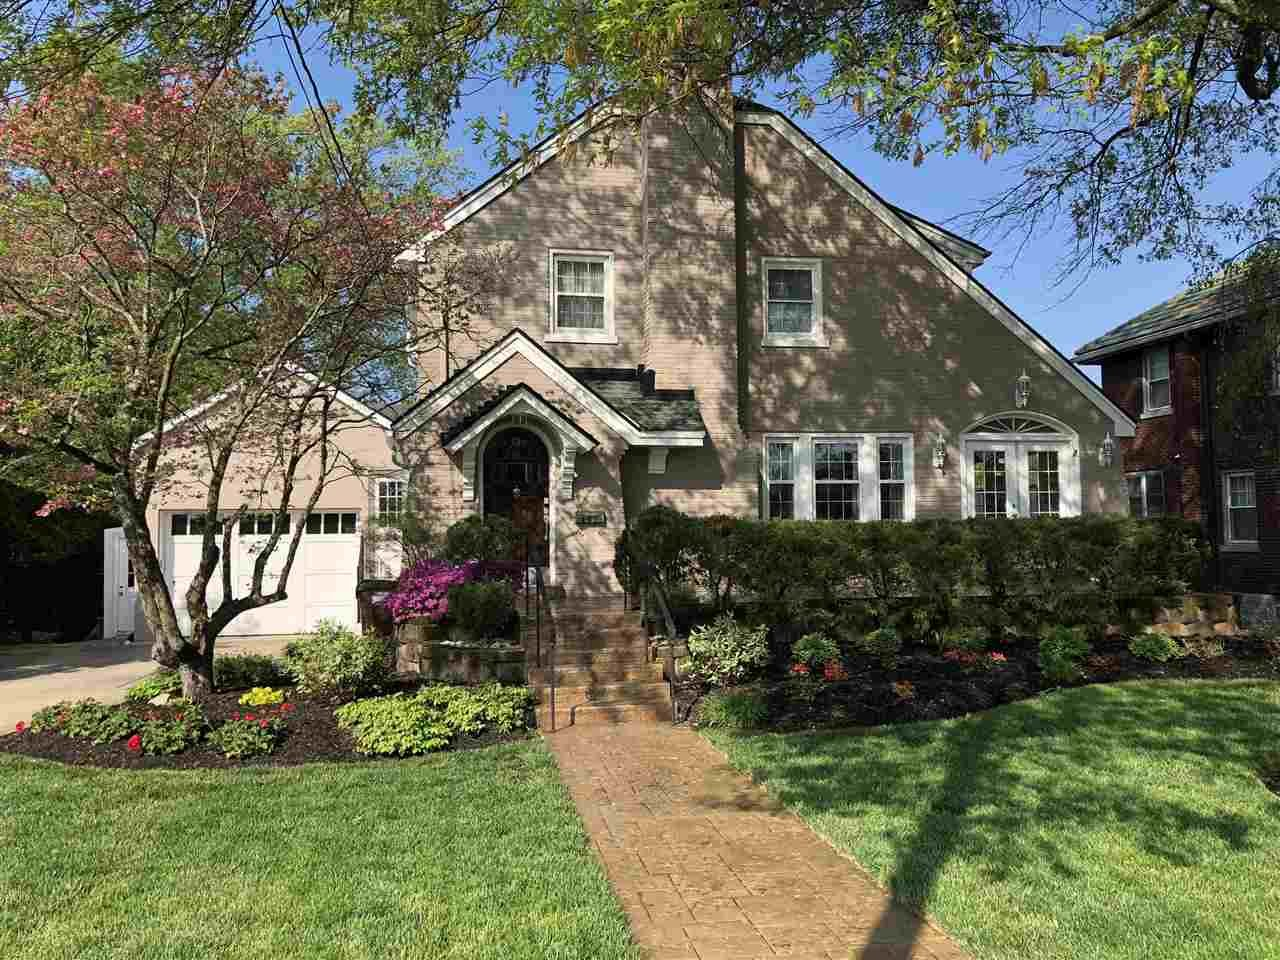 sell your house in fort thomas ky - we buy nky houses